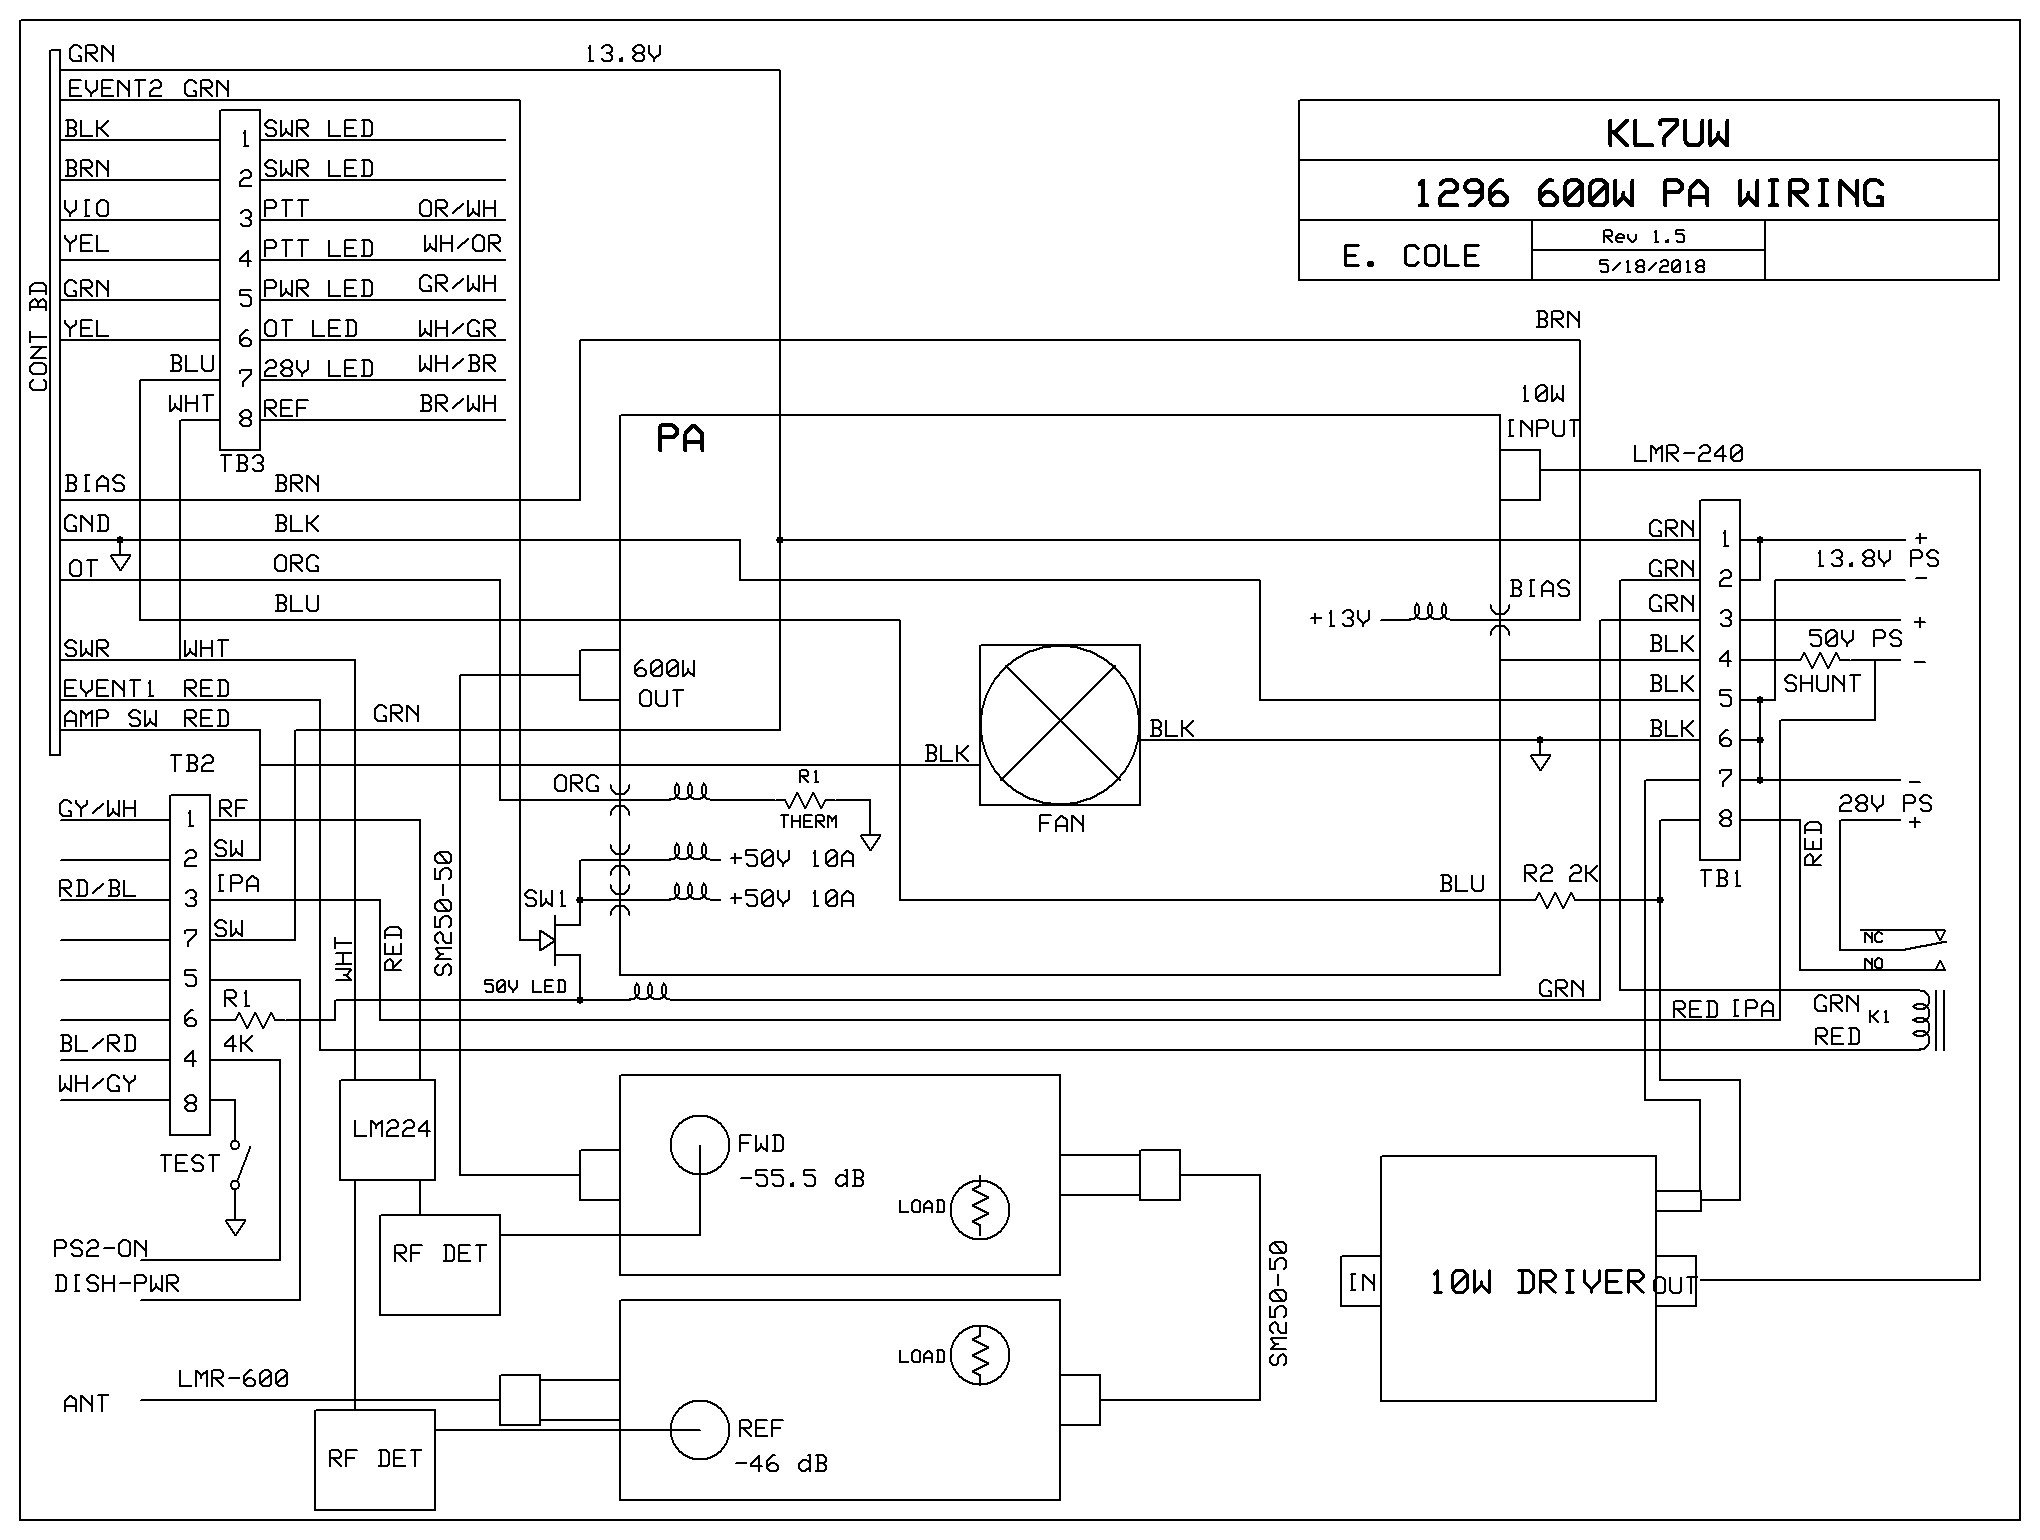 1296 Mhz 600w Amp Ham Shack Wiring Diagrams More Info To Be Displayed Return Home Page